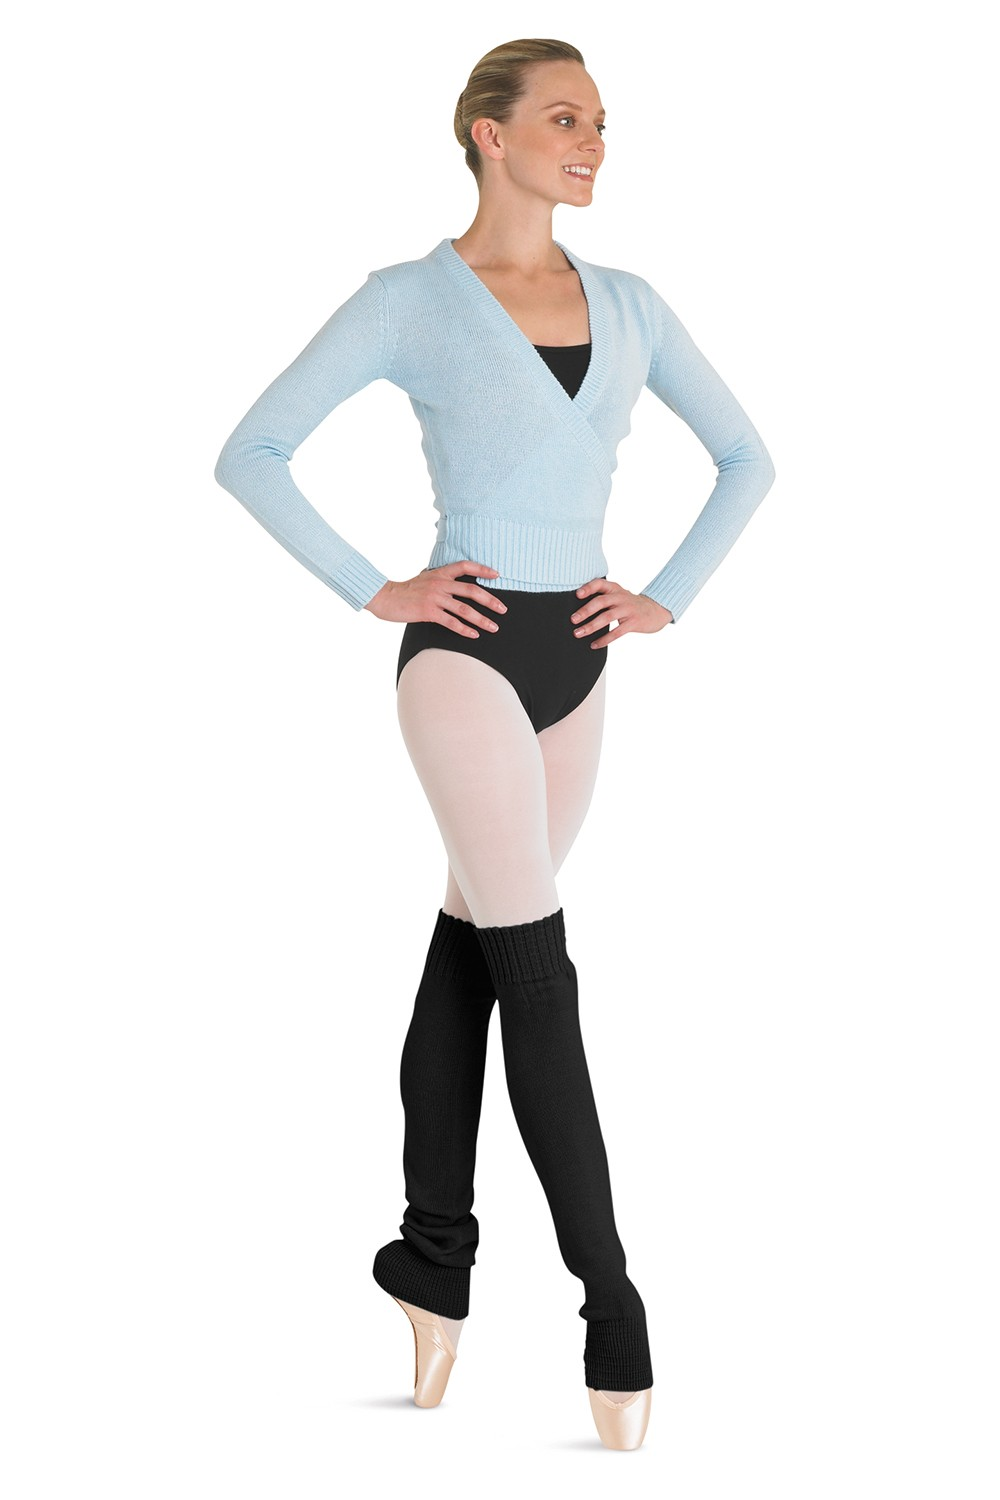 Knee High Legwarmer Women's Dance Warmups